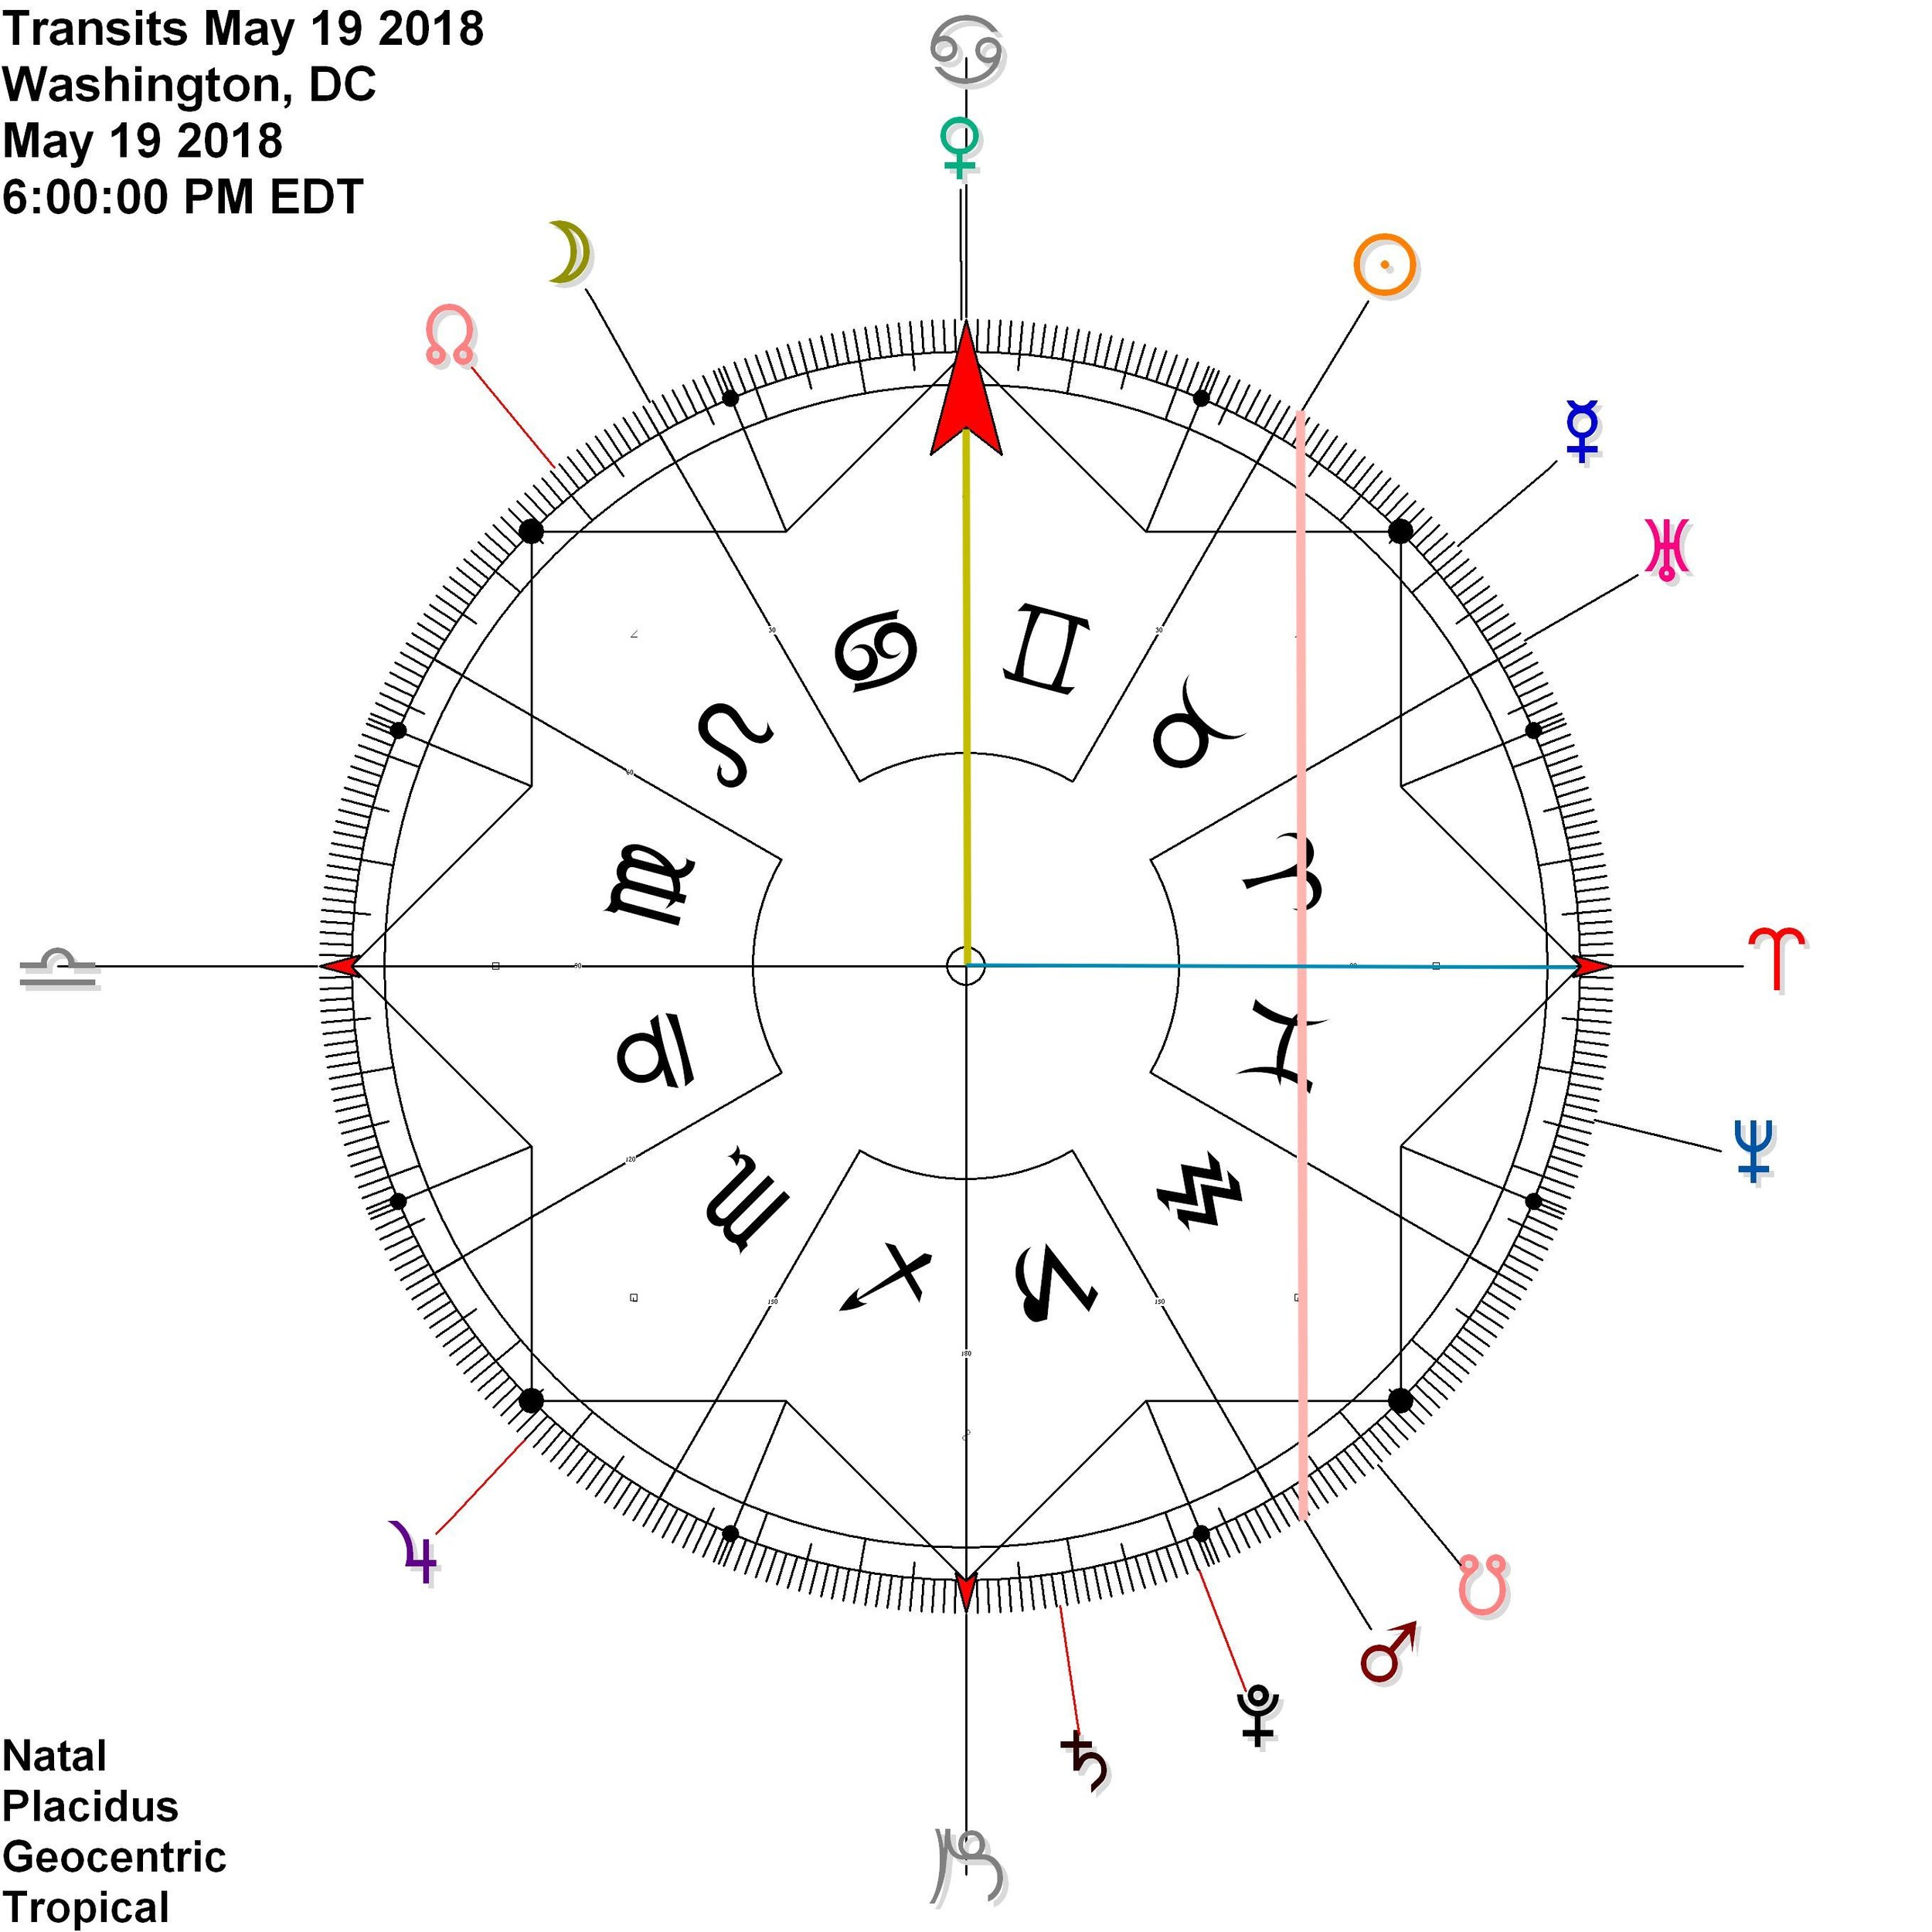 Venus sits on cardinal axis = ingresses into Cancer  while Sun and Mars reflect in contra-antiscia    SUN + MARS - VENUS = ARIES POINT